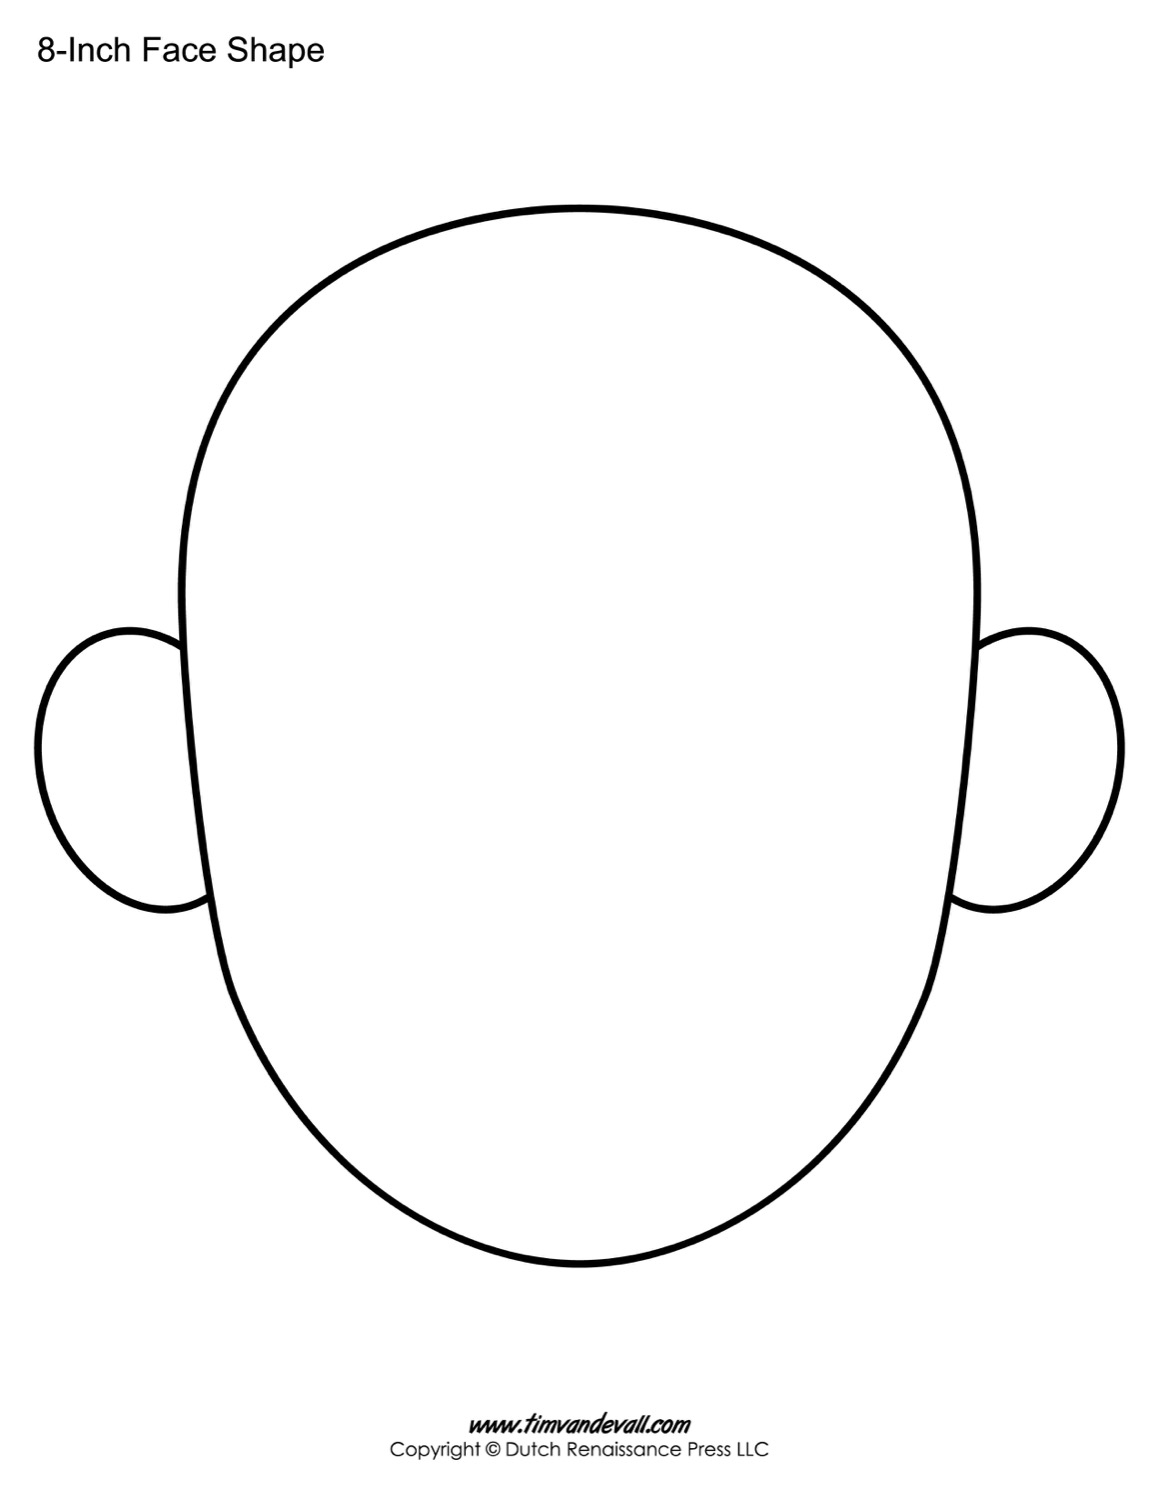 Blank Face Templates Blank Face Templates  Printable Face Shapes For Kids